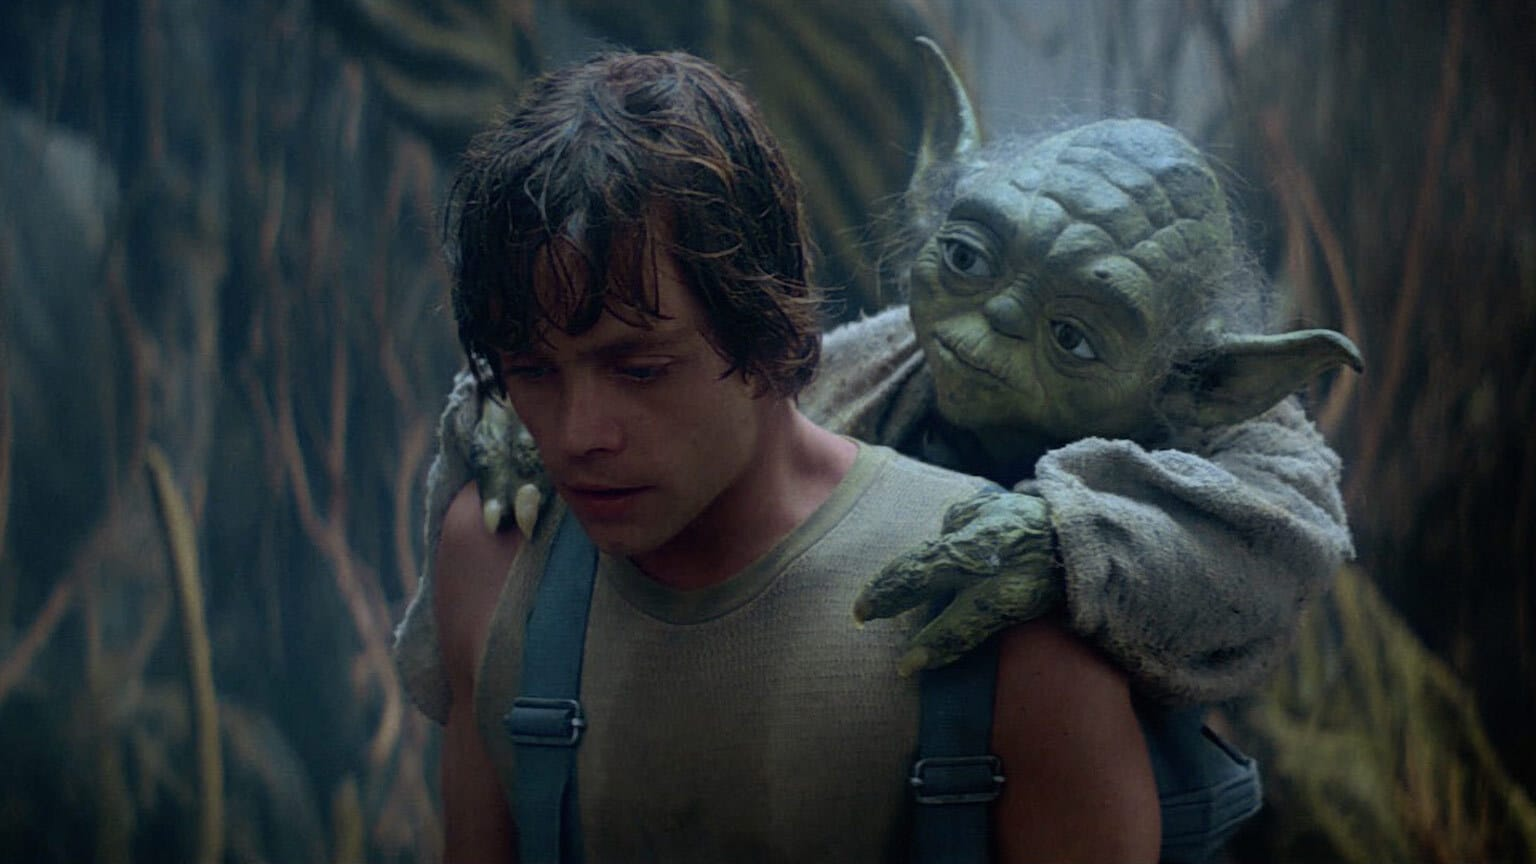 Empire at 40 | From a Certain Point of View: Was Luke Right to Leave Dagobah with His Training Incomplete?